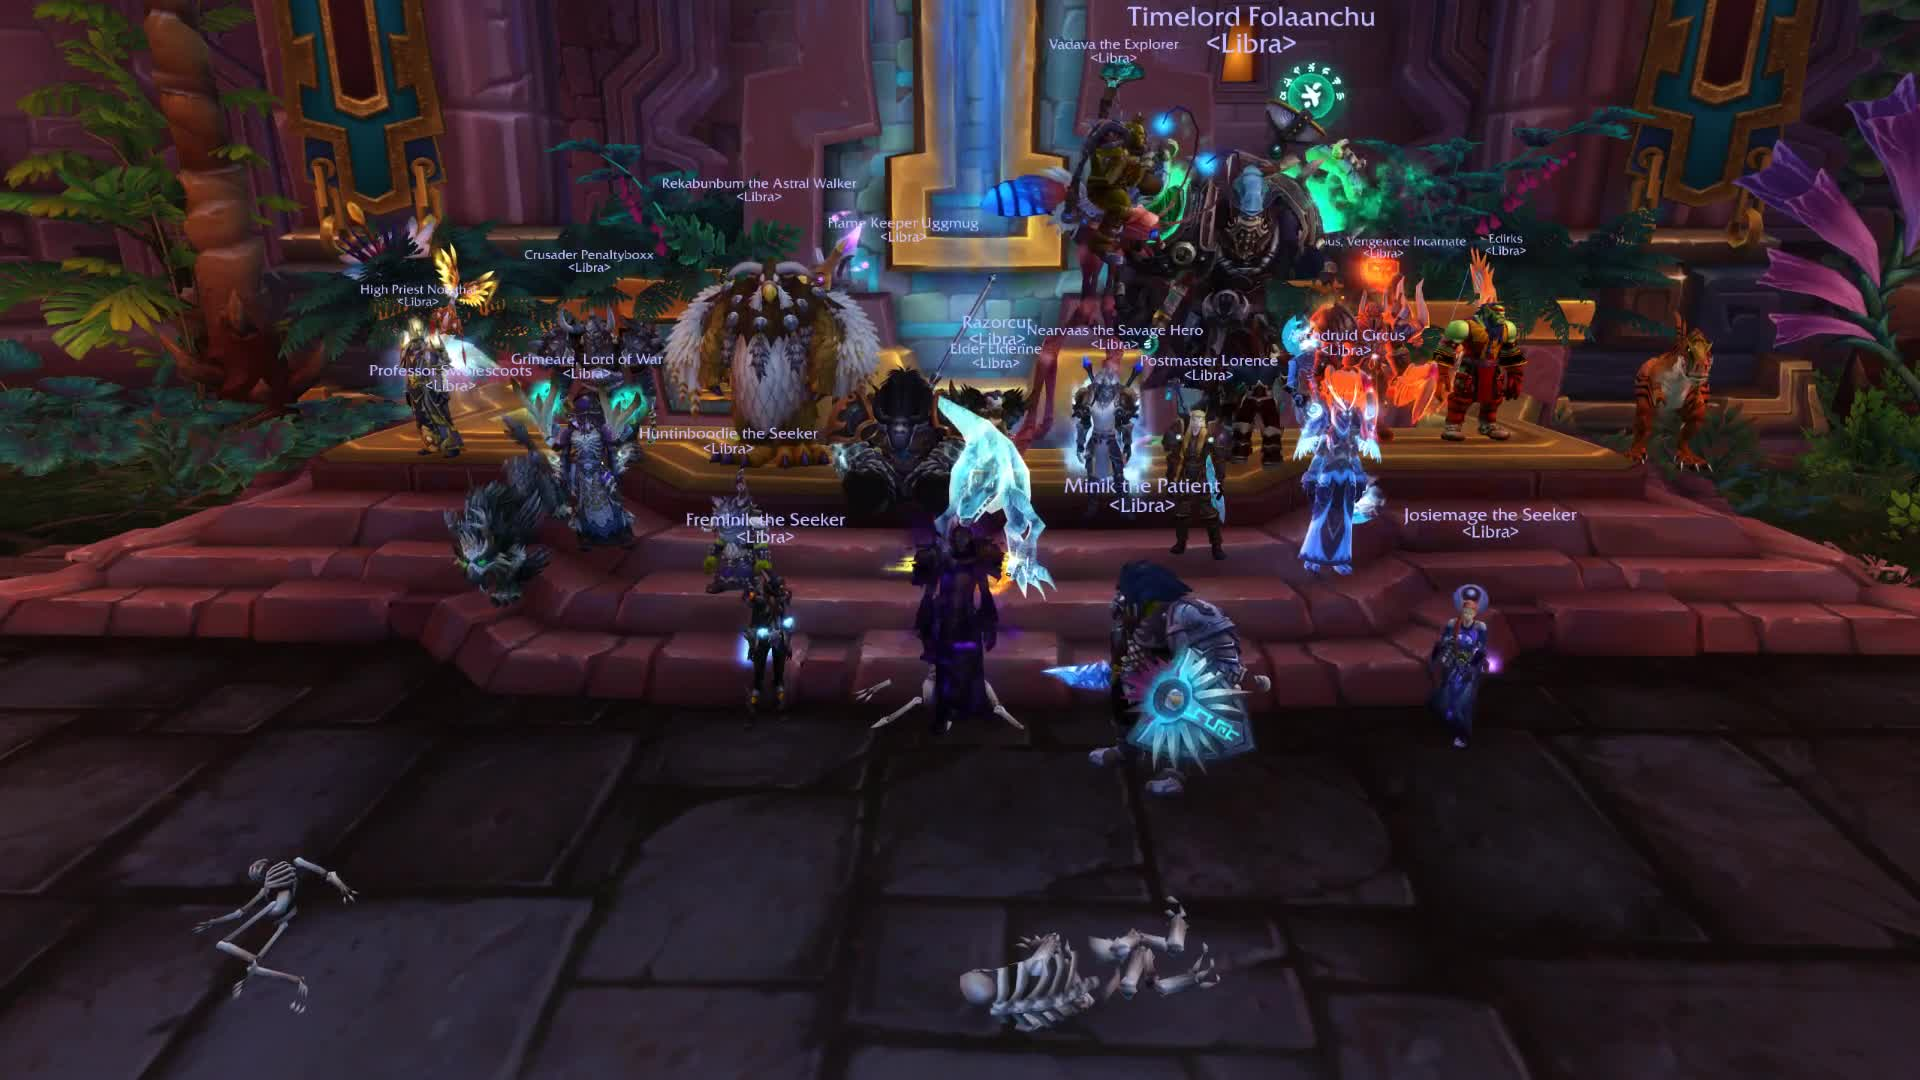 DJXyanyde, World of Warcraft, Libra downs the first boss on Mythic! GIFs